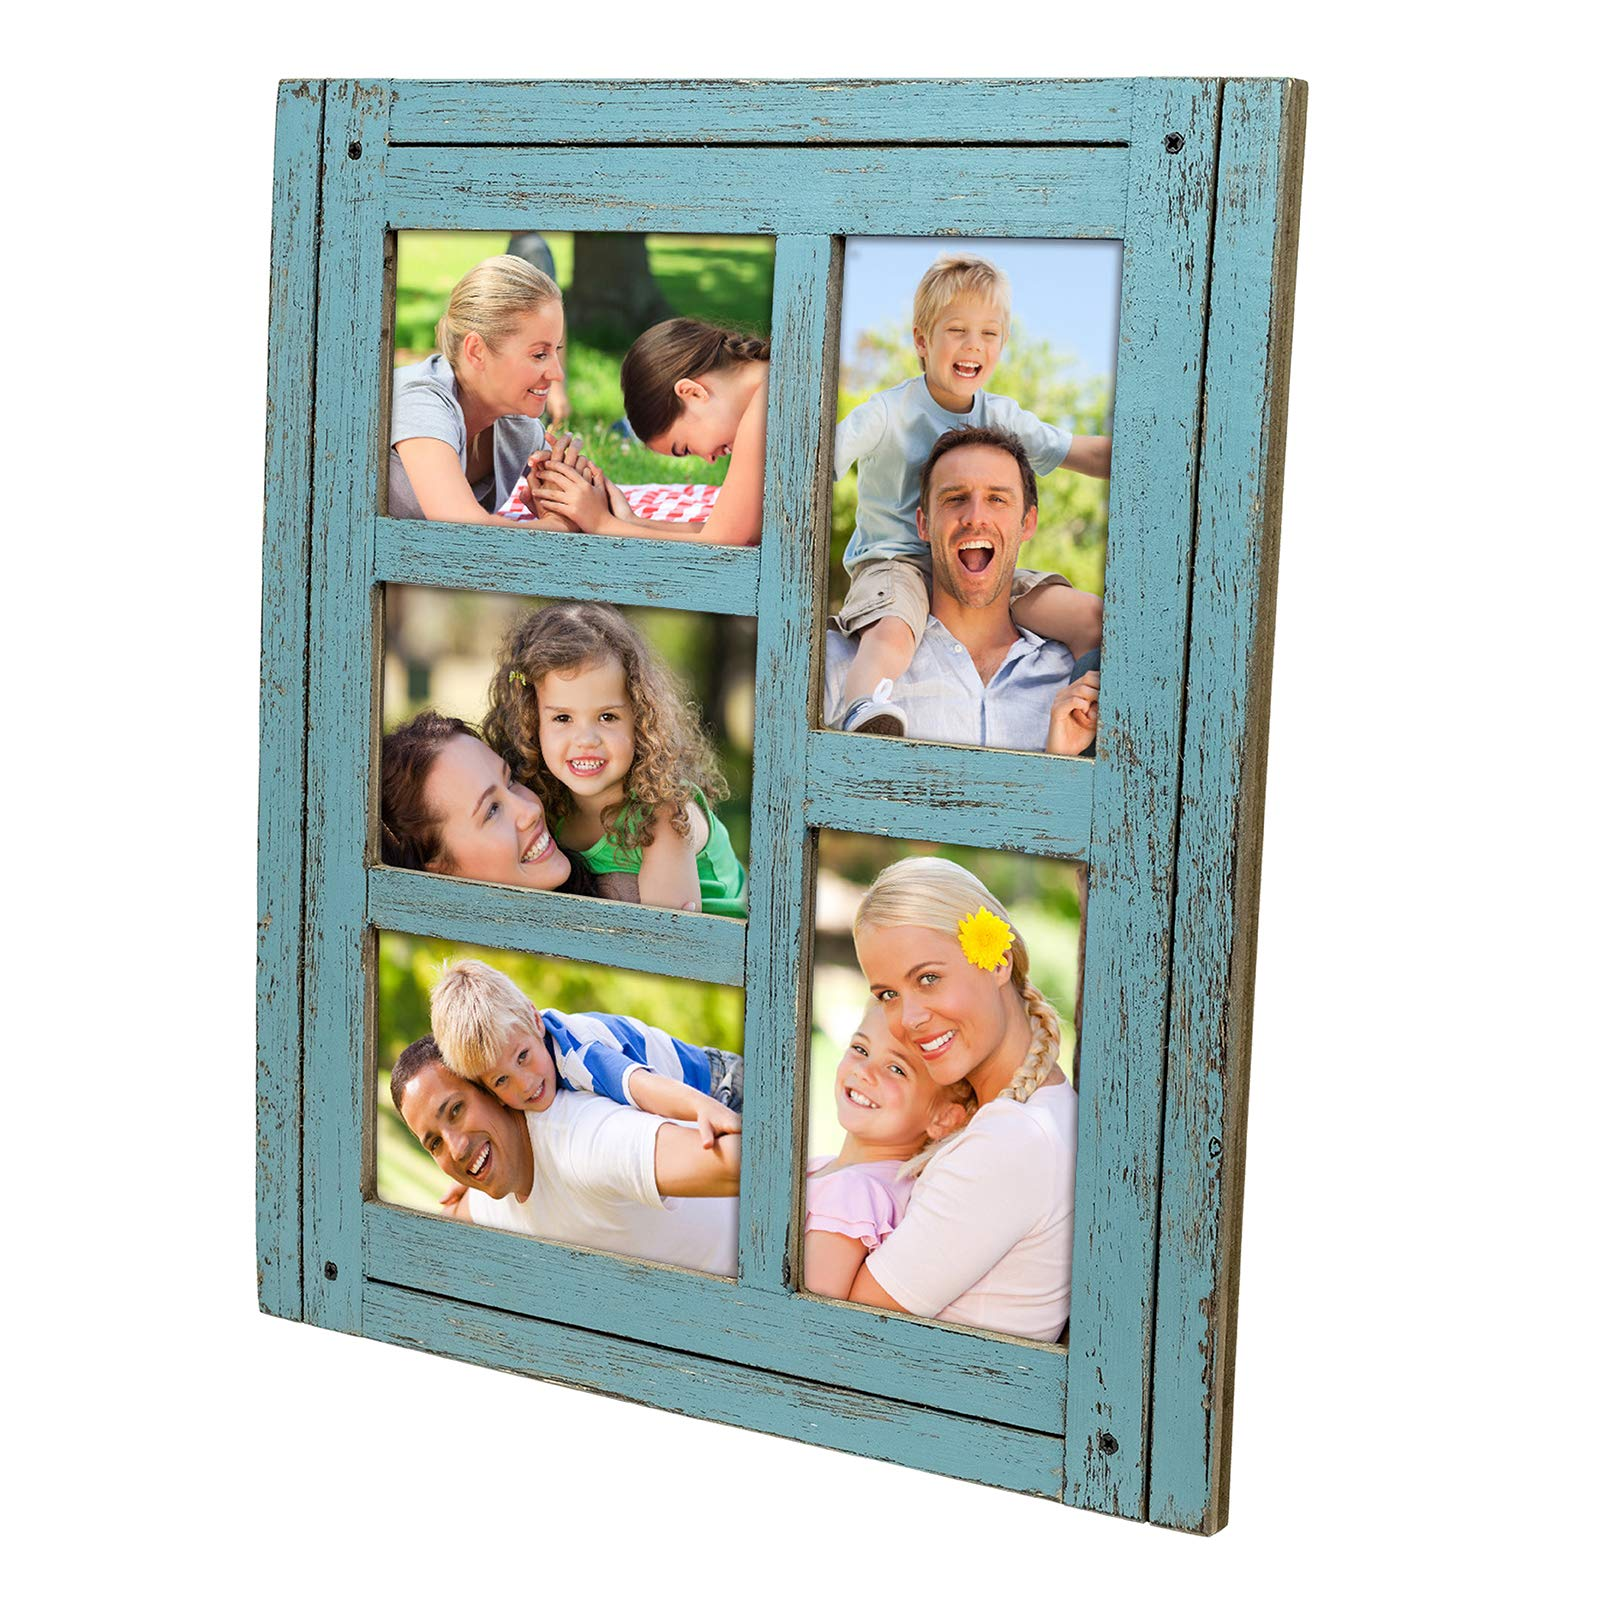 Collage Picture Frames from Rustic Distressed Wood: Holds Five 4x6 Photos: Ready to Hang or use Tabletop. Shabby Chic, Driftwood, Barnwood, Farmhouse, Reclaimed Wood Picture Frame Collage (Blue) by Excello Global Products